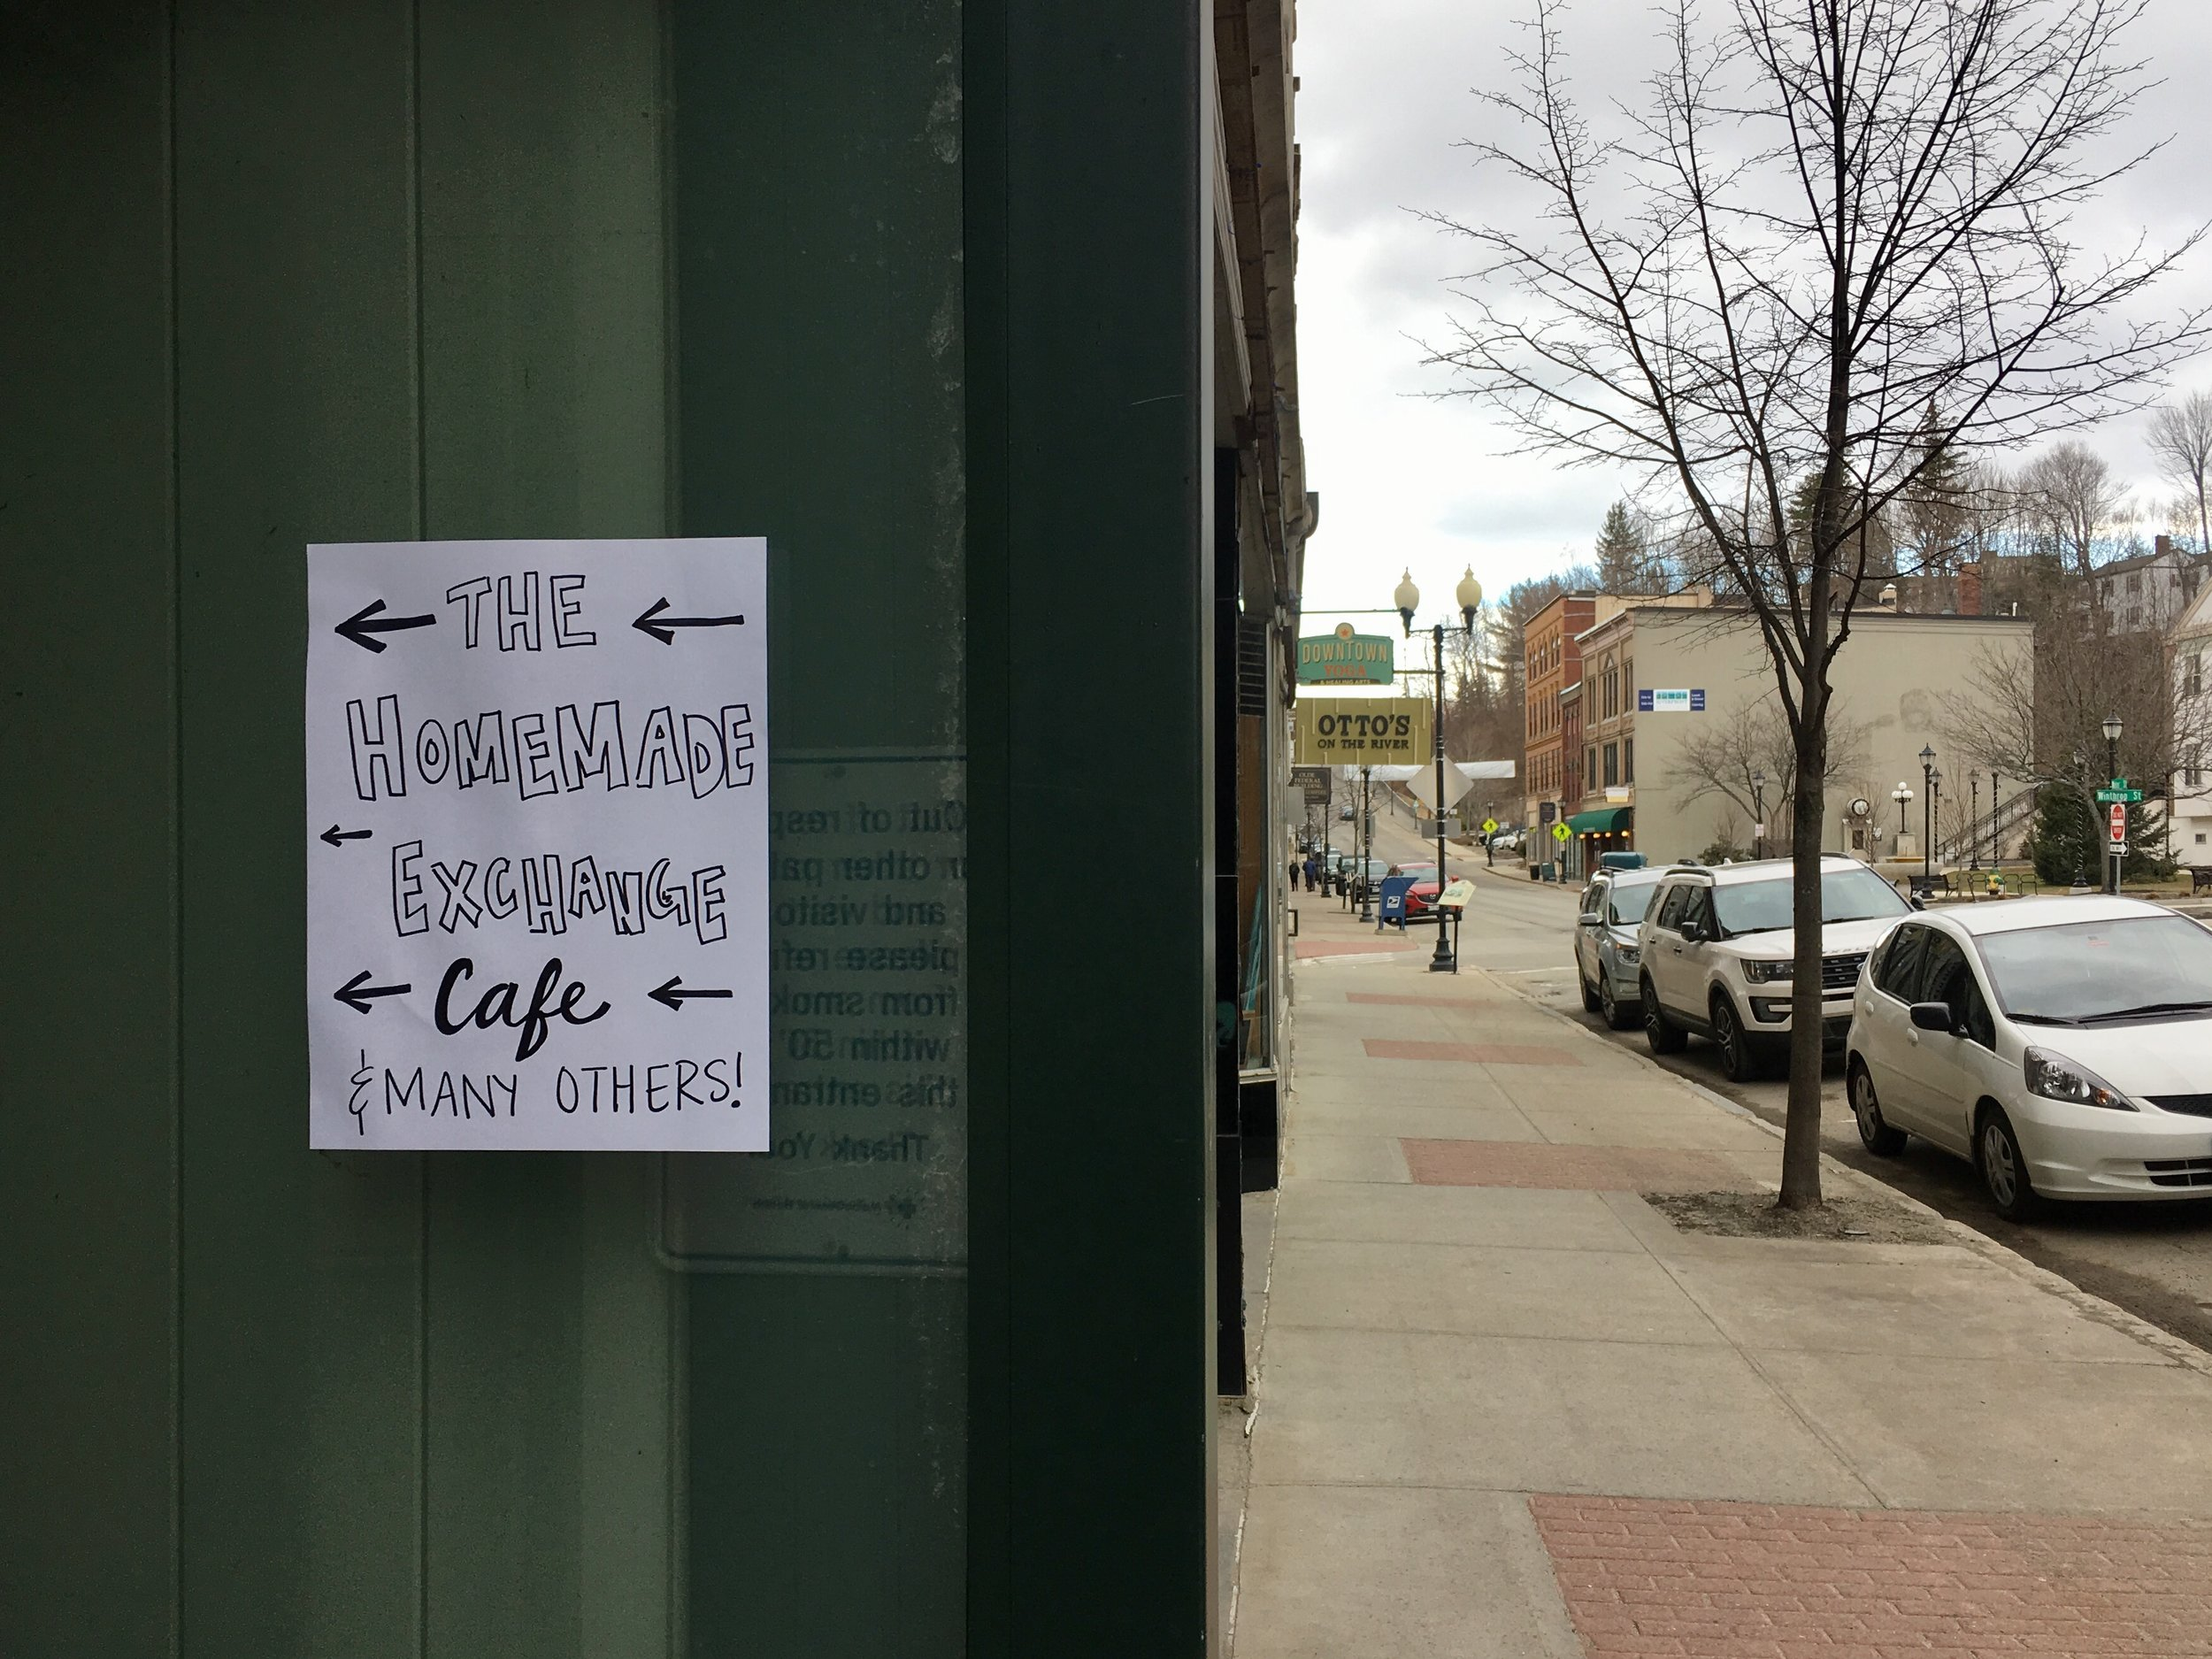 Our handwritten sign posted to direct folks walking down Water Street into our pop-up cafe.